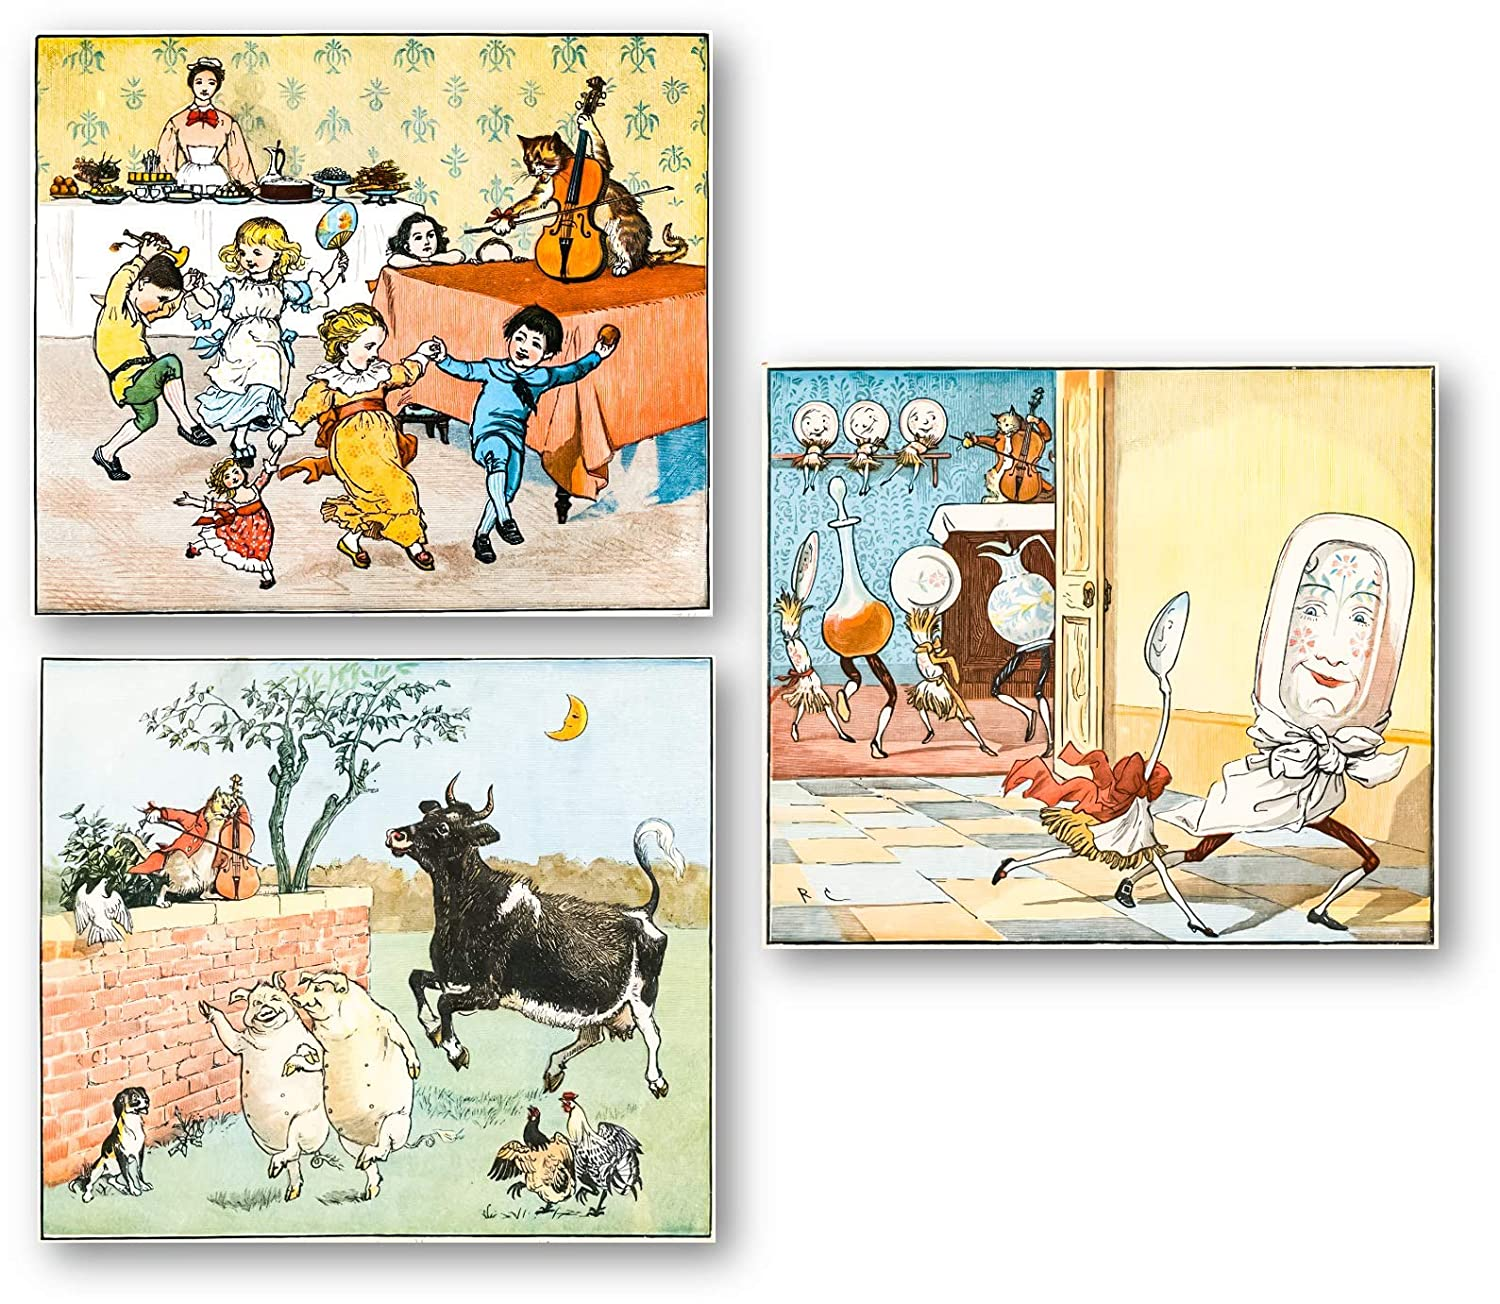 Ramini Brands Babies Rooms Wall Decor Art Drawings - Set of 3 8 x 10 Unframed Prints - Hey Diddle Diddle The Cat and The Fiddle Nursery Rhyme - Great Gift for Baby Showers